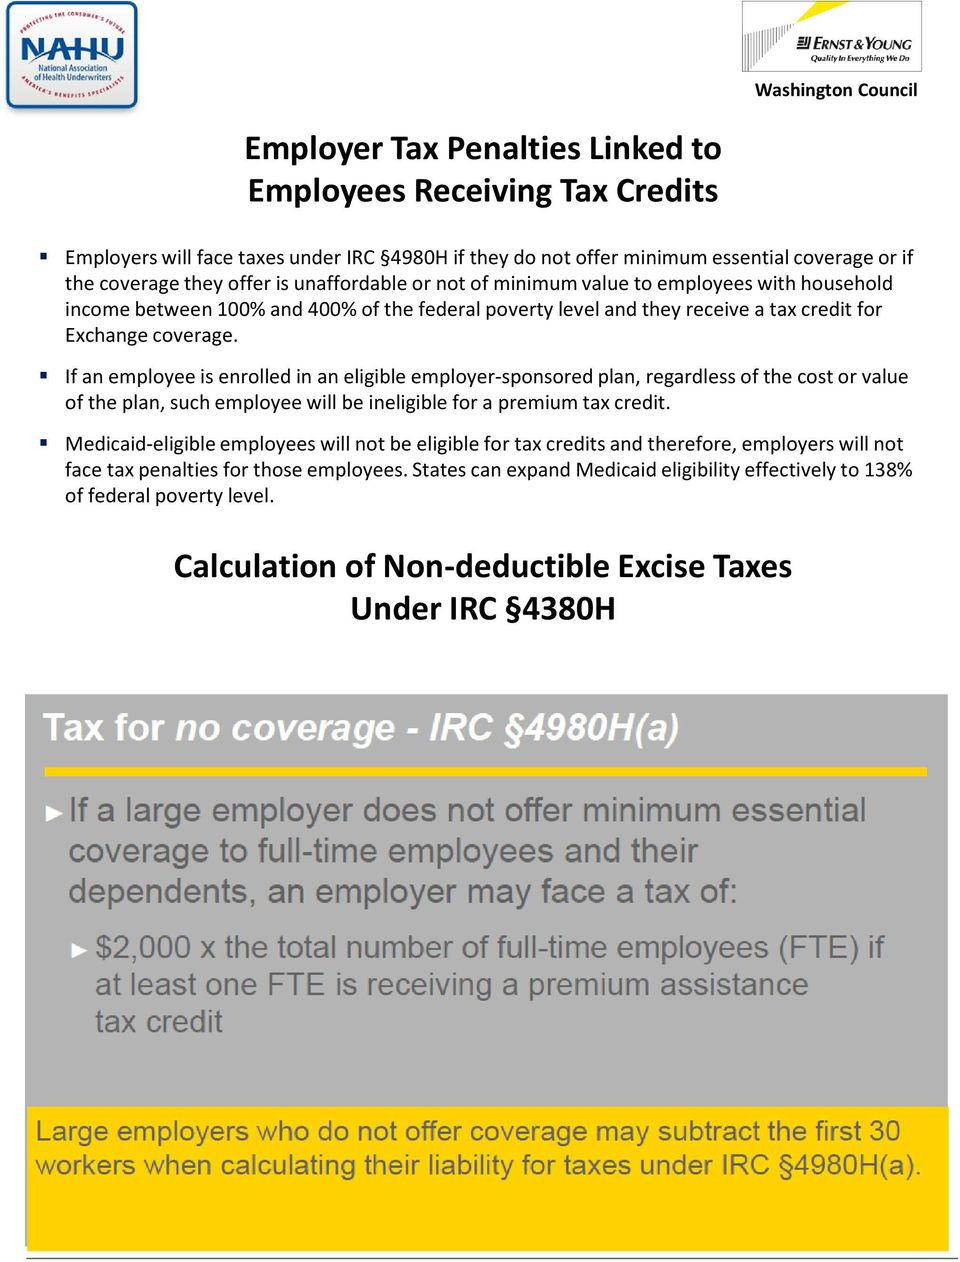 If an employee is enrolled in an eligible employer-sponsored plan, regardless of the cost or value of the plan, such employee will be ineligible for a premium tax credit.